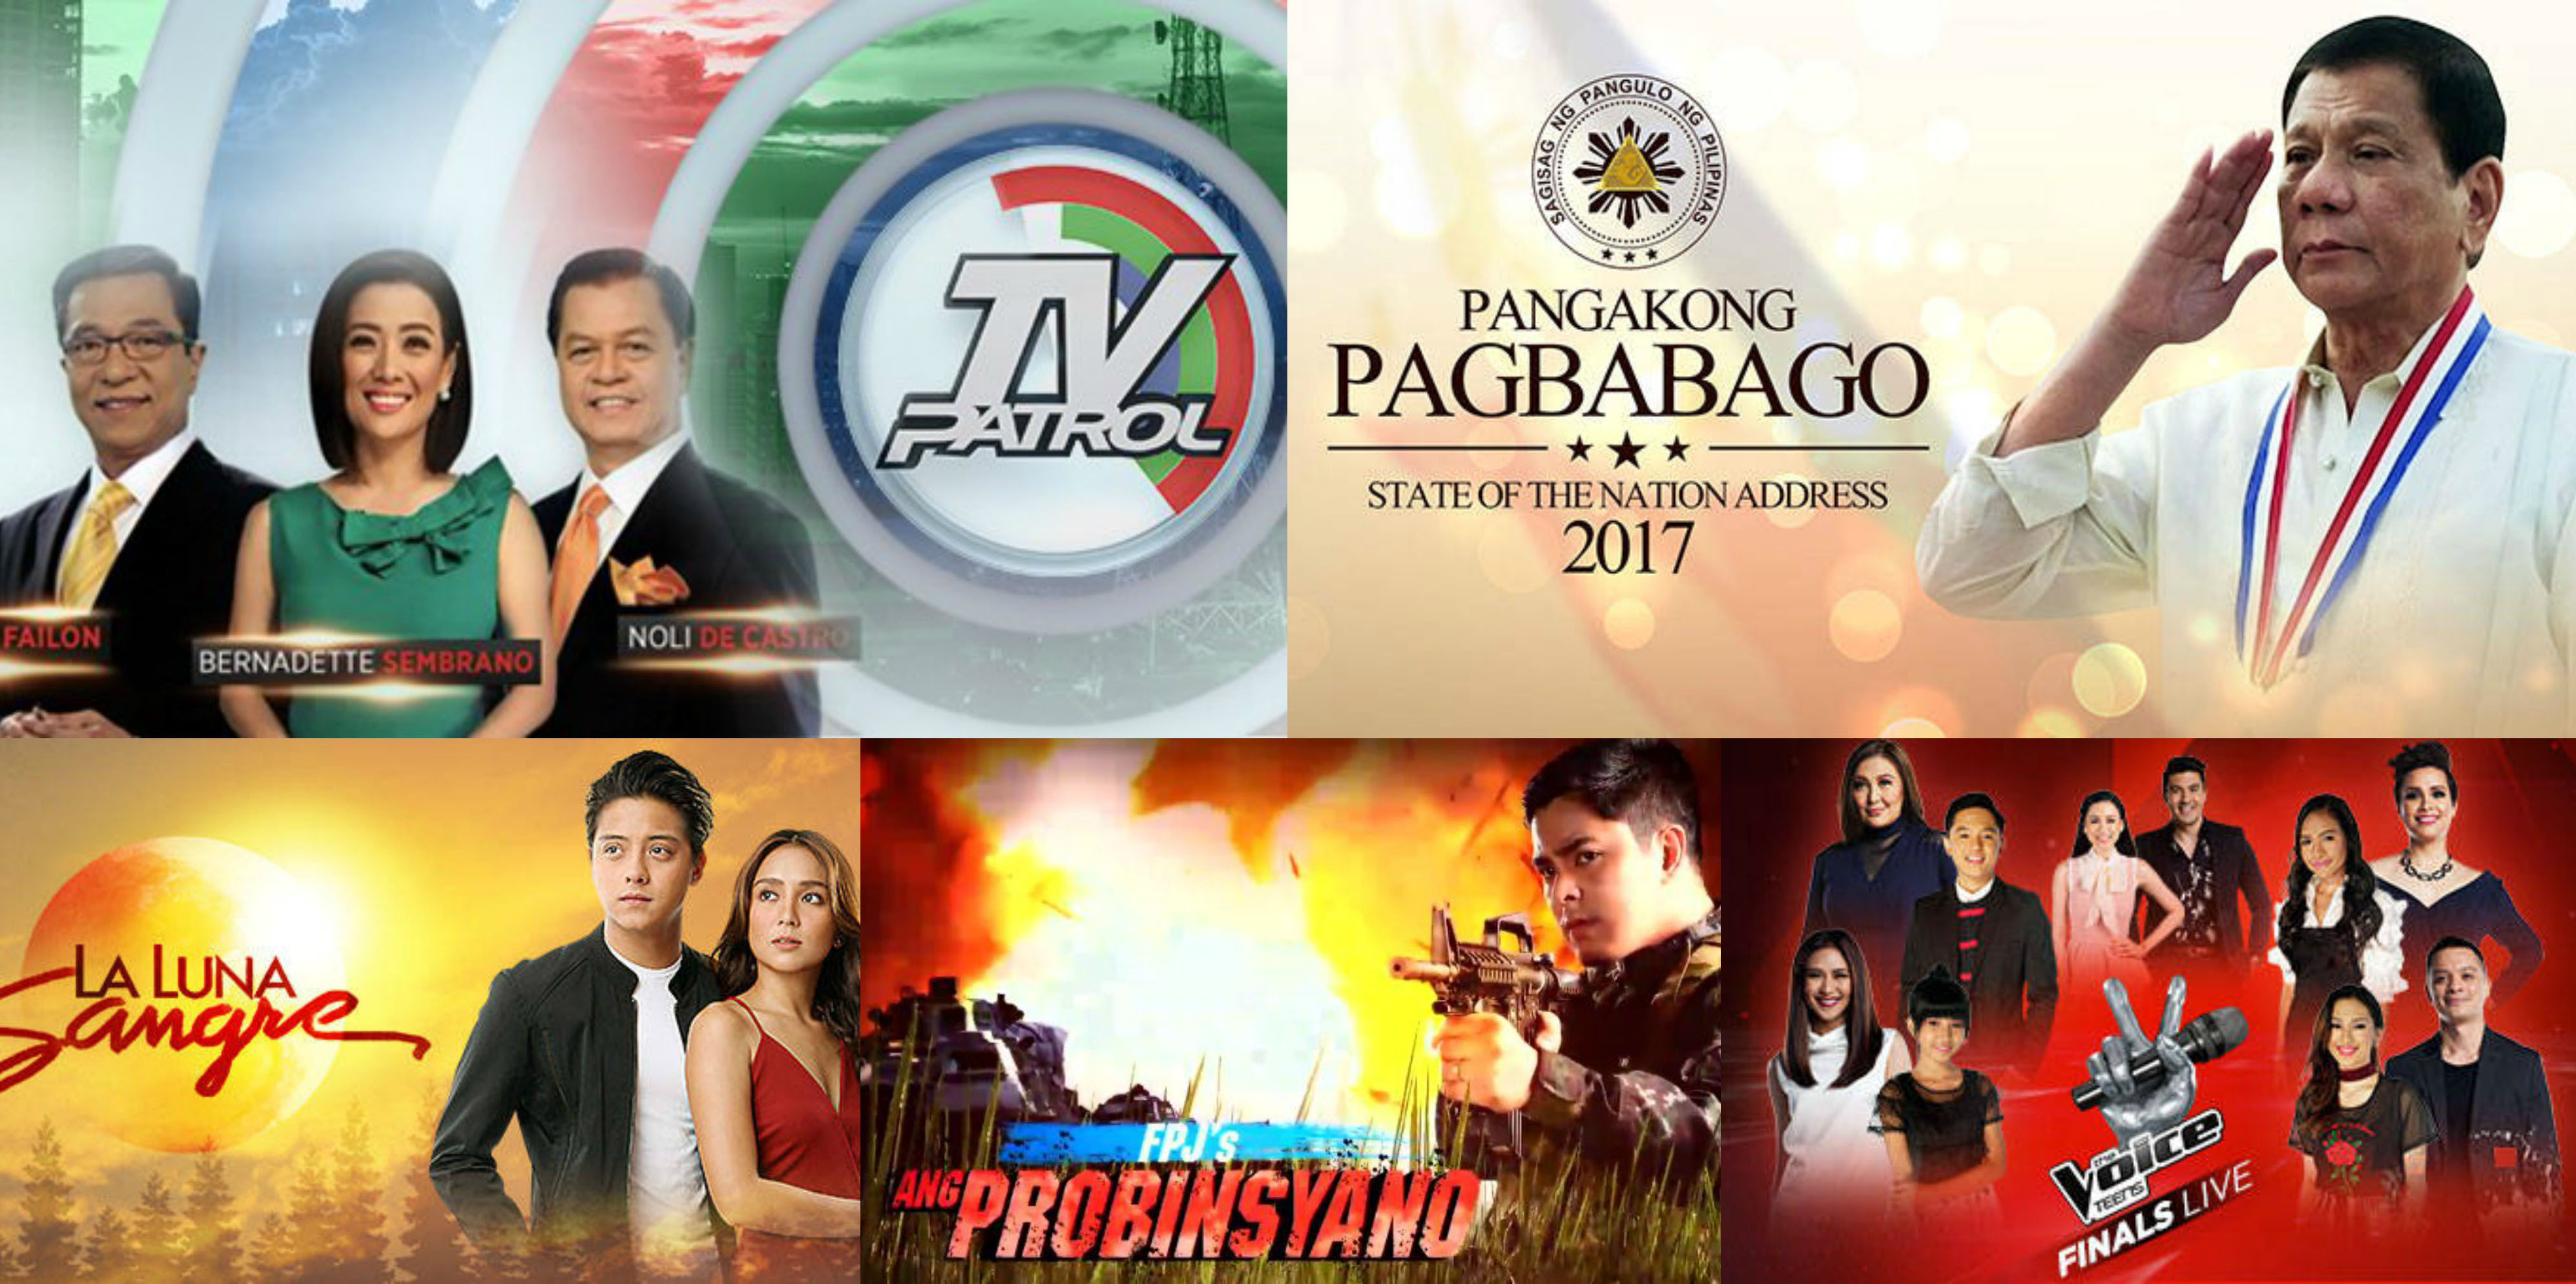 ABS-CBN leads in nat'l TV ratings with SONA live coverage, relevant news